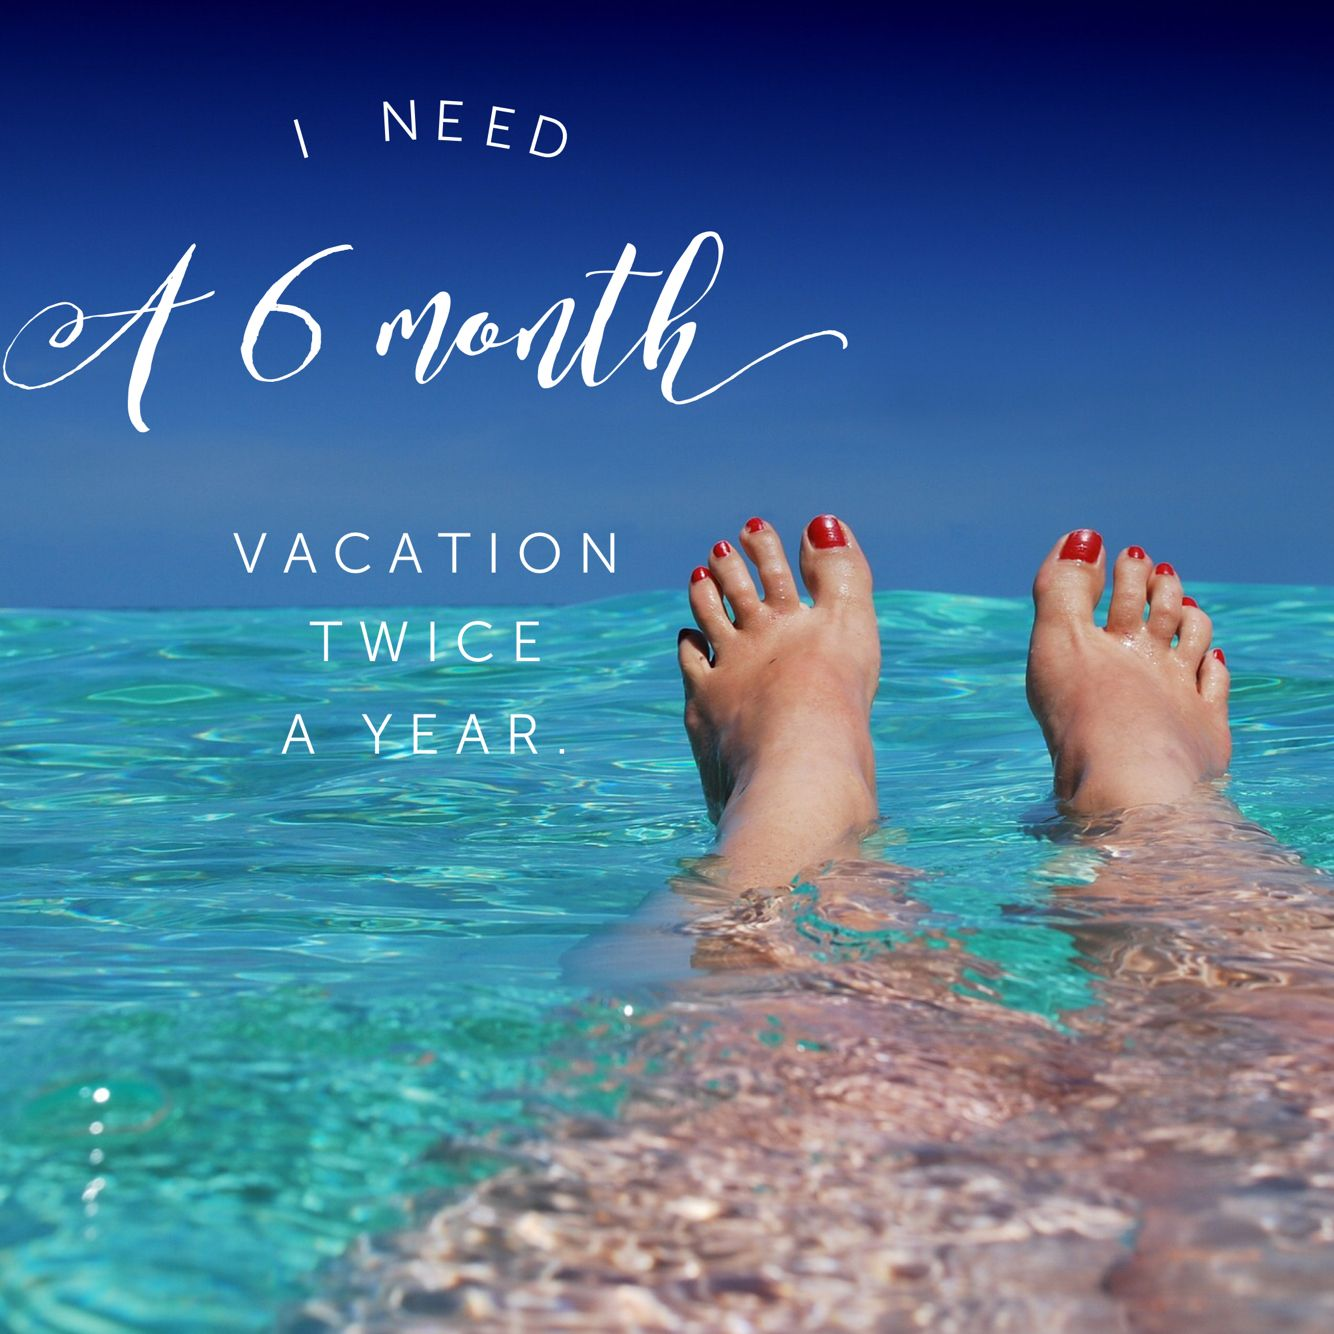 I Need A 6 Month Vacation Twice A Year Inspirational Quotes